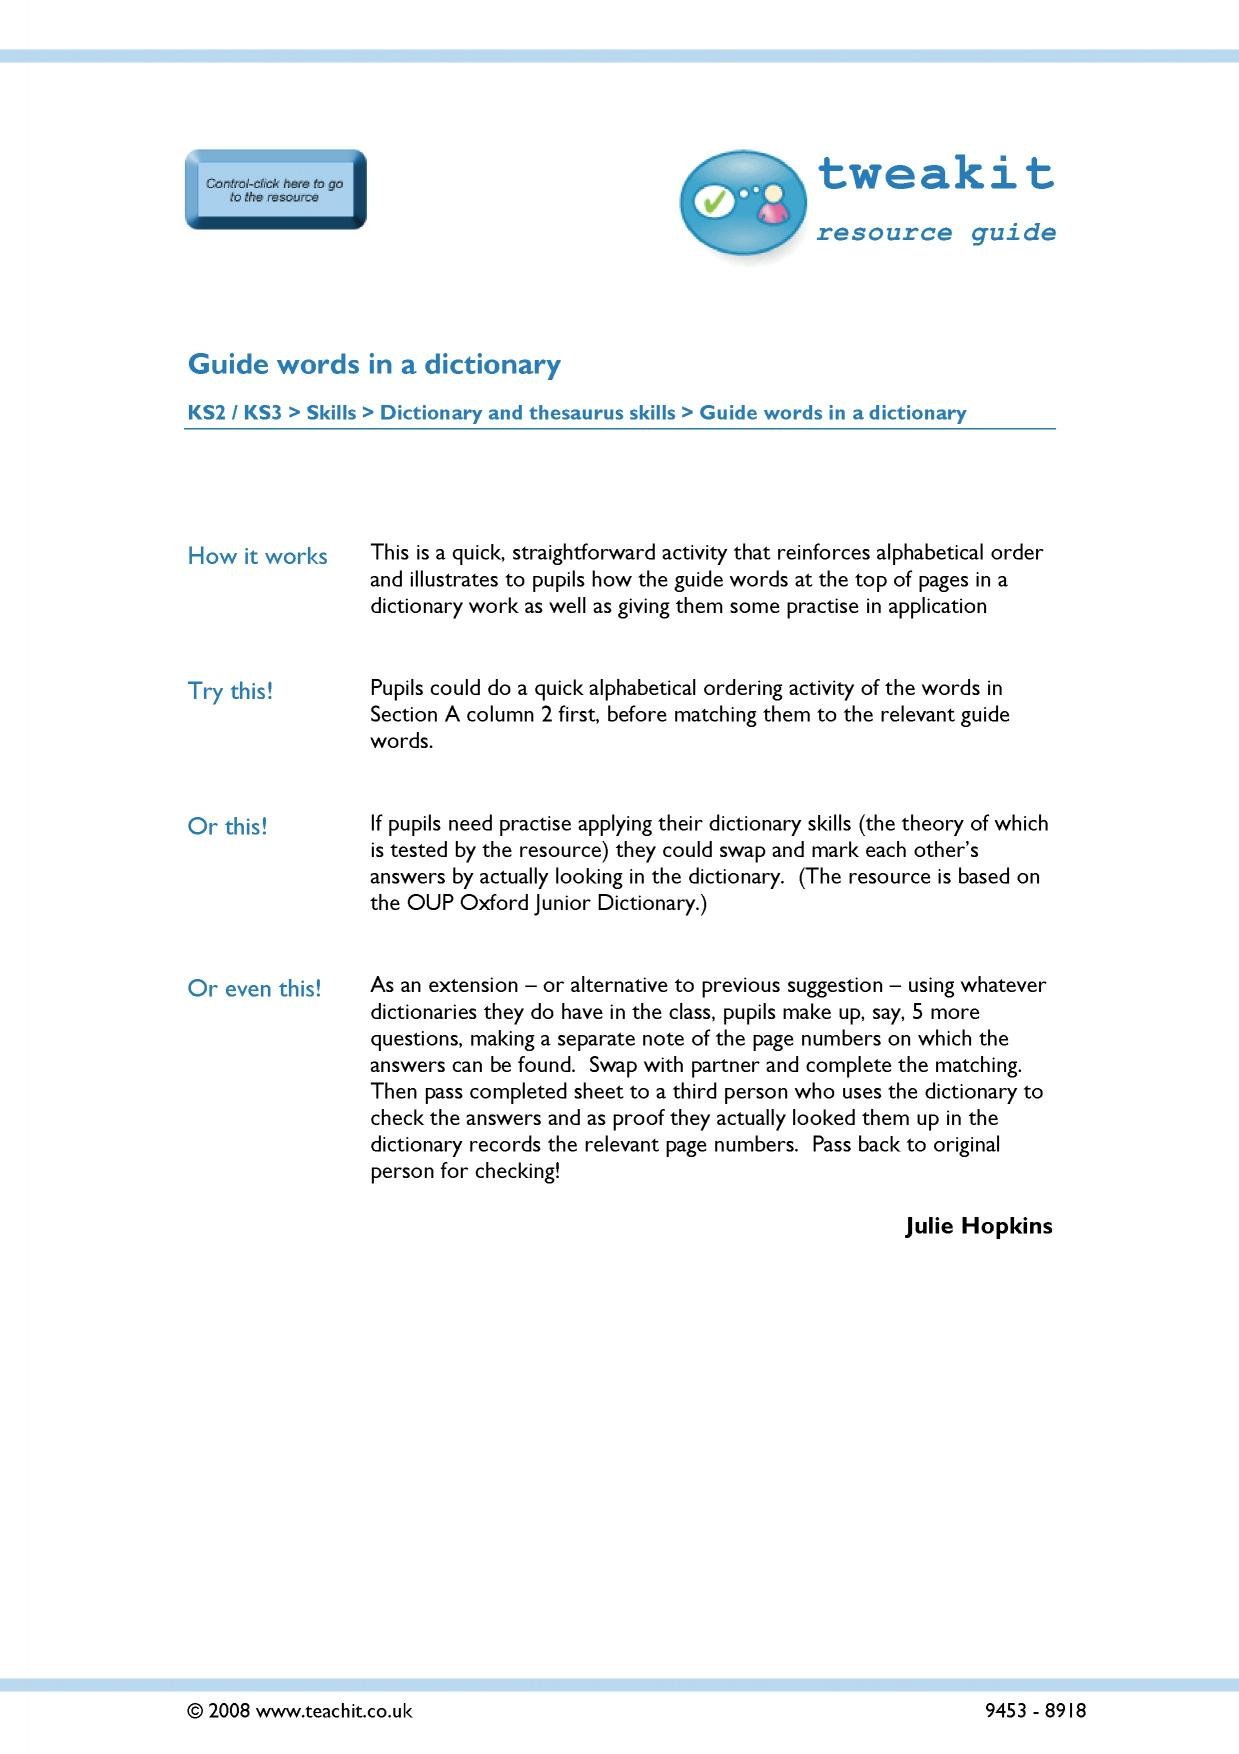 worksheet Dictionary Guide Words Worksheet ks3 dictionary skills teachit english 2 preview